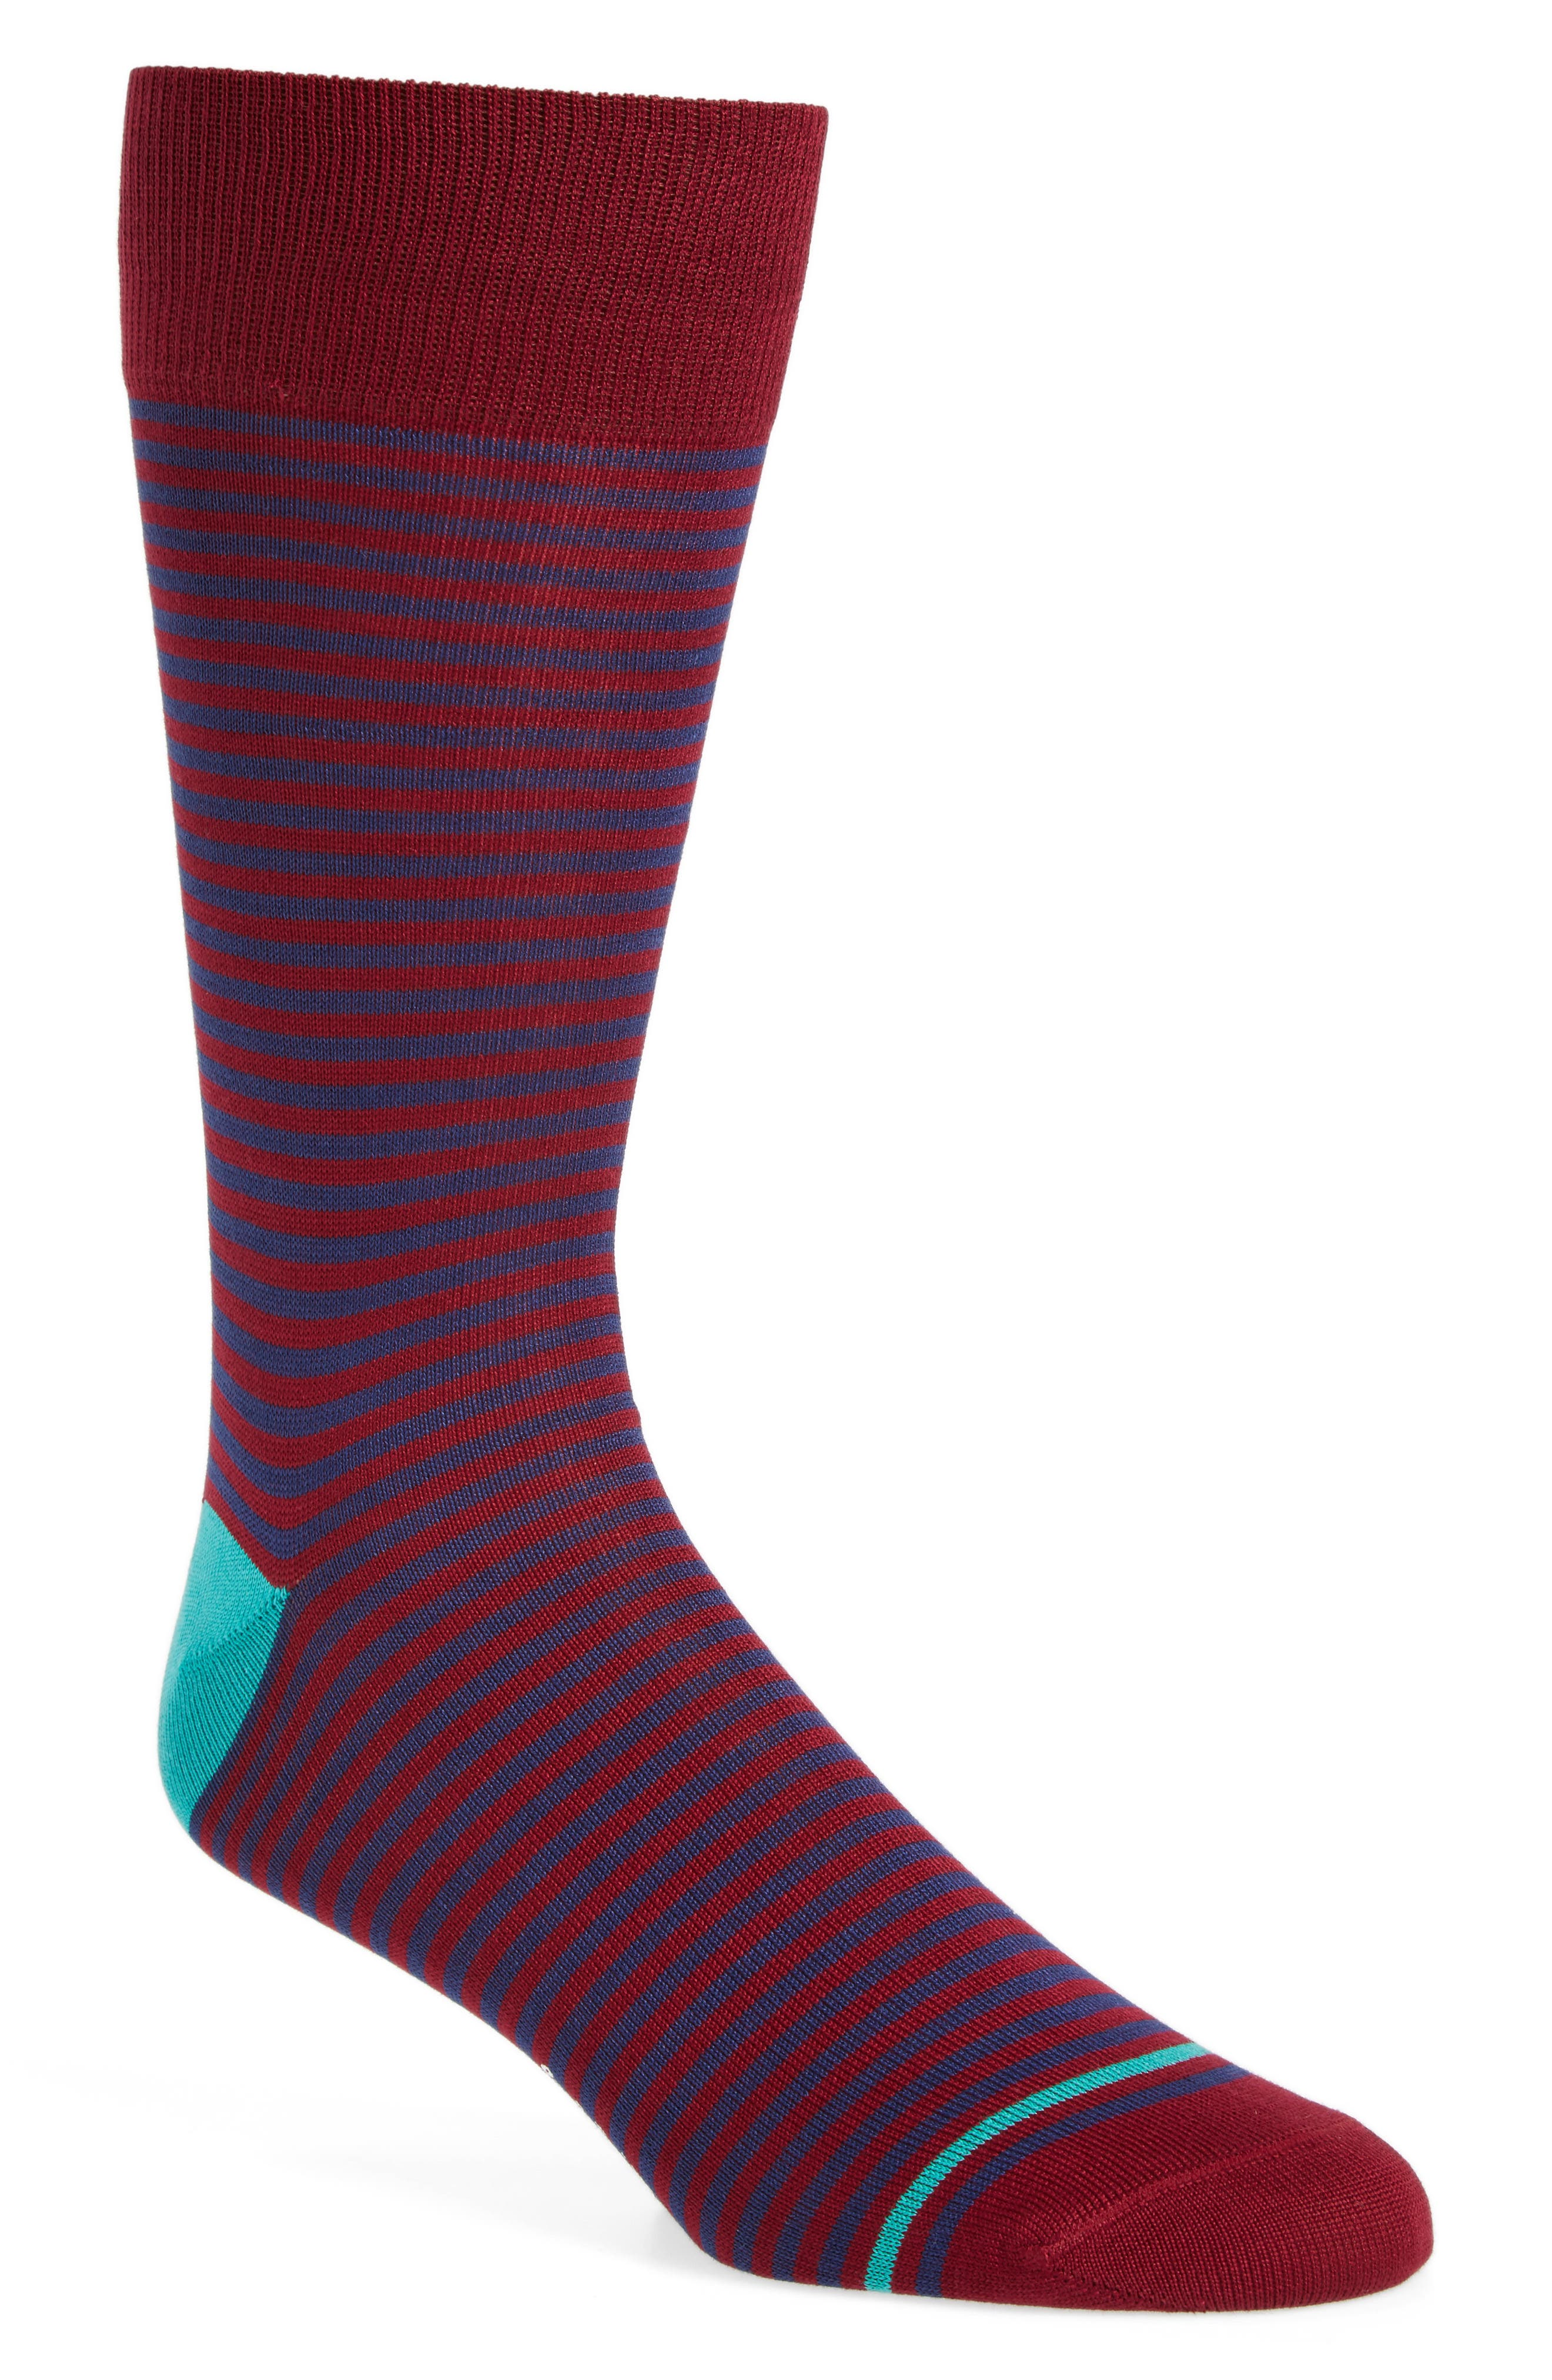 Paul Smith Marsden Stripe Socks